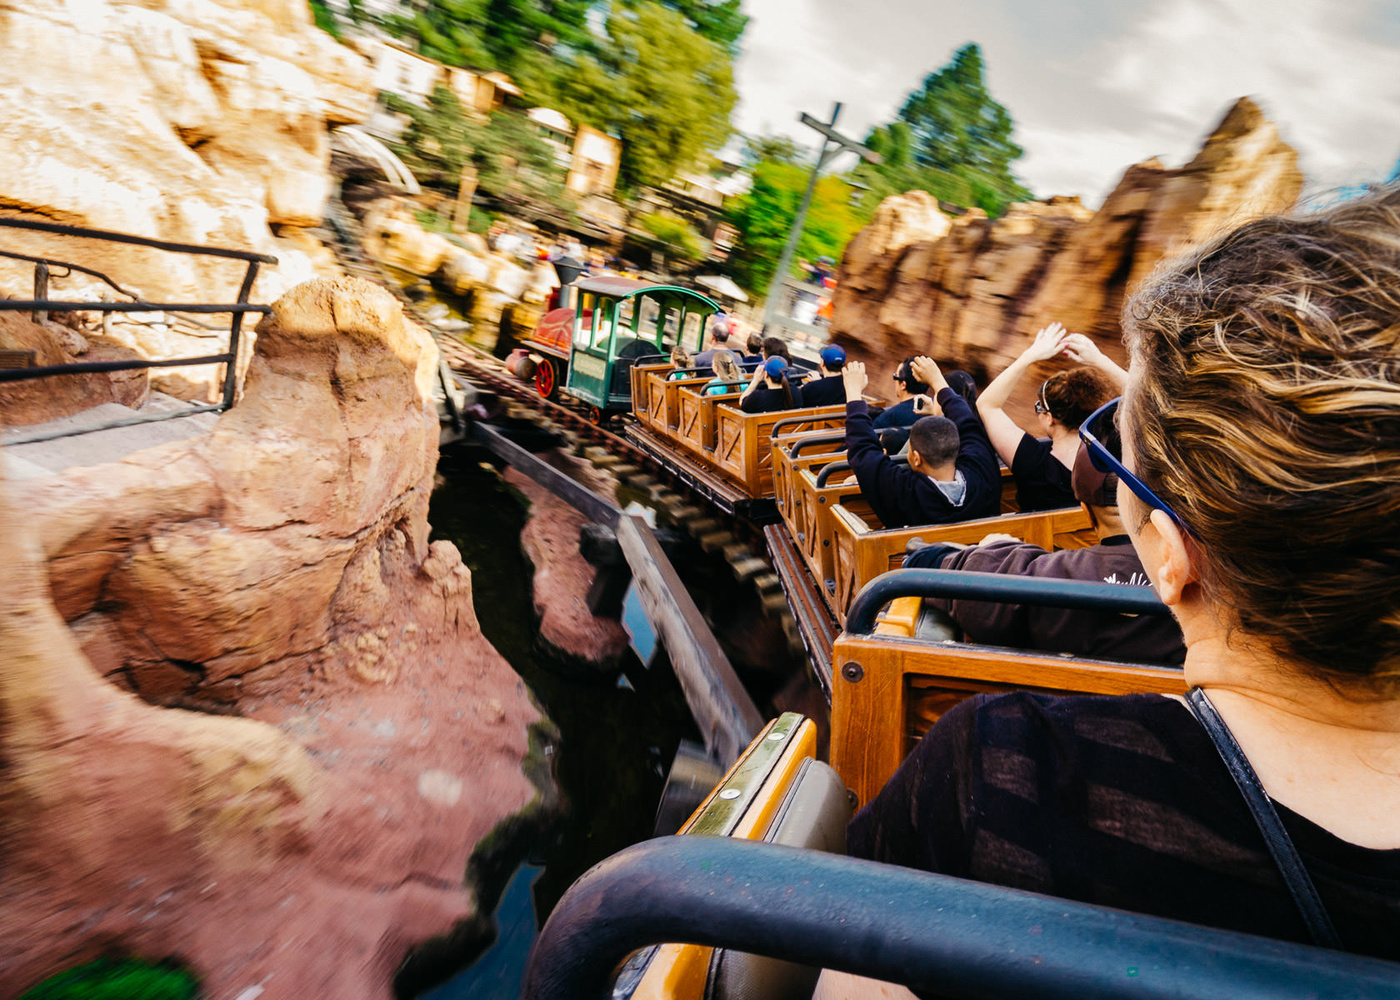 Photo of Big Thunder Mountain Railroad at Disneyland taken by a Leica T